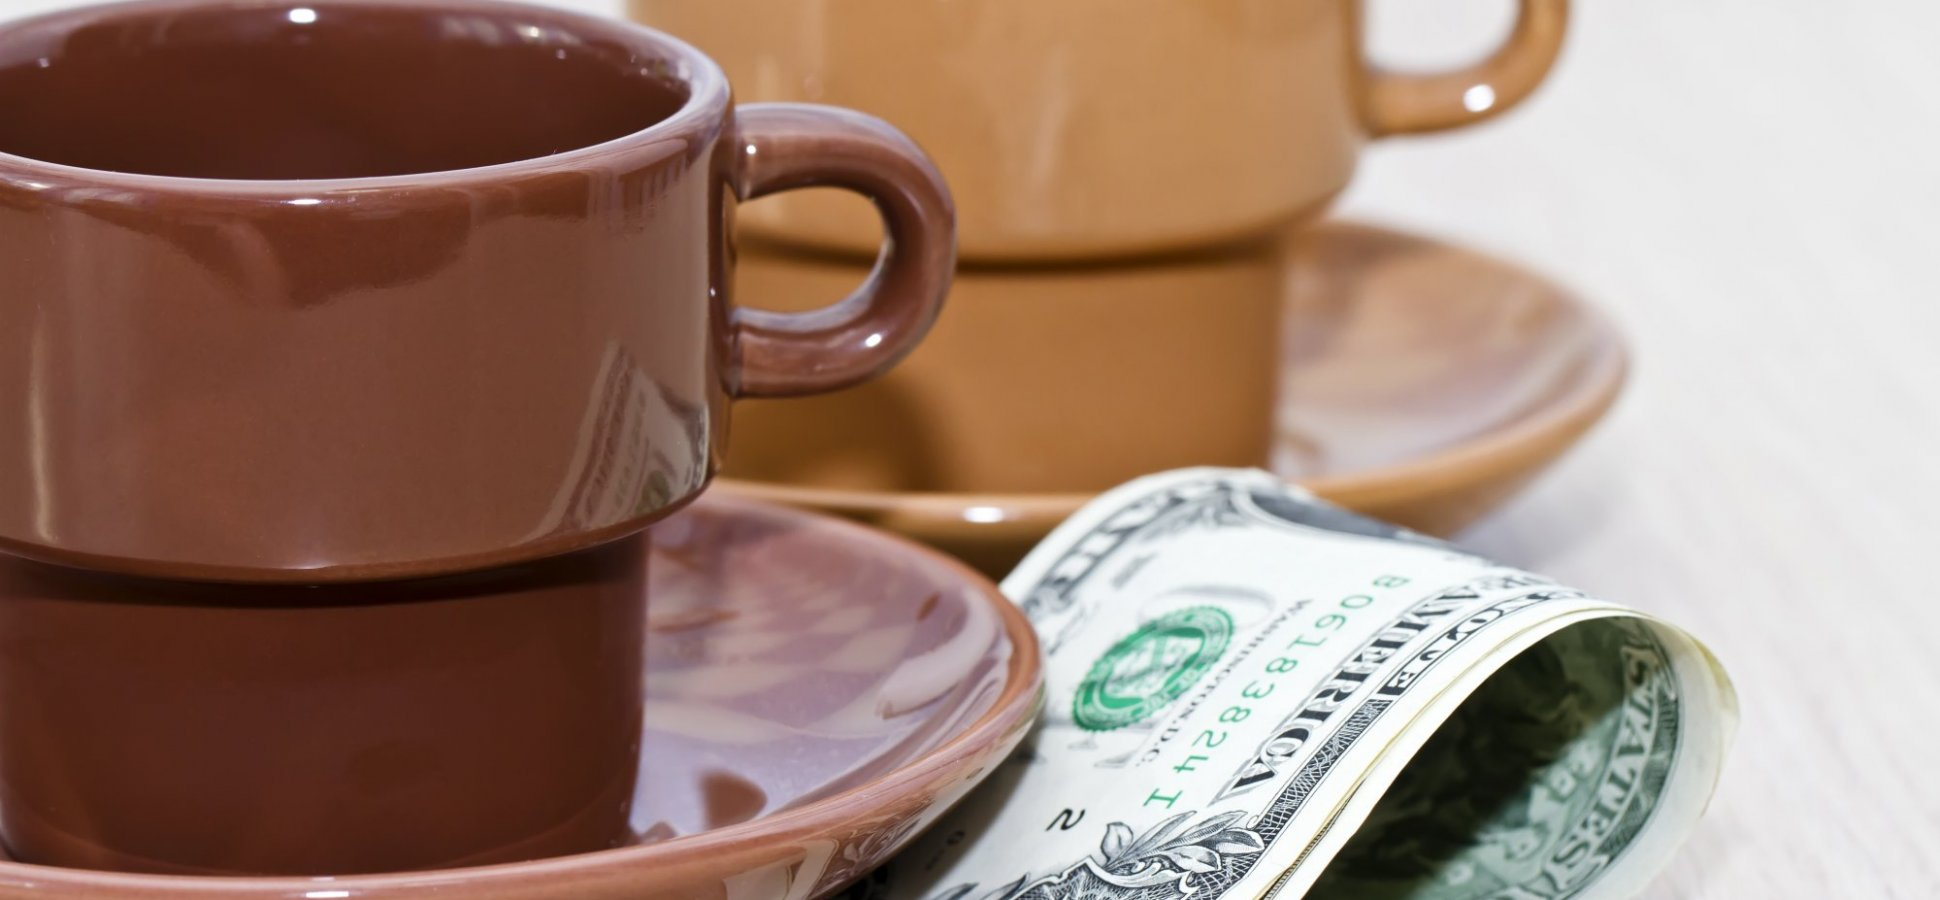 Why There Should Be No Tipping at Restaurants